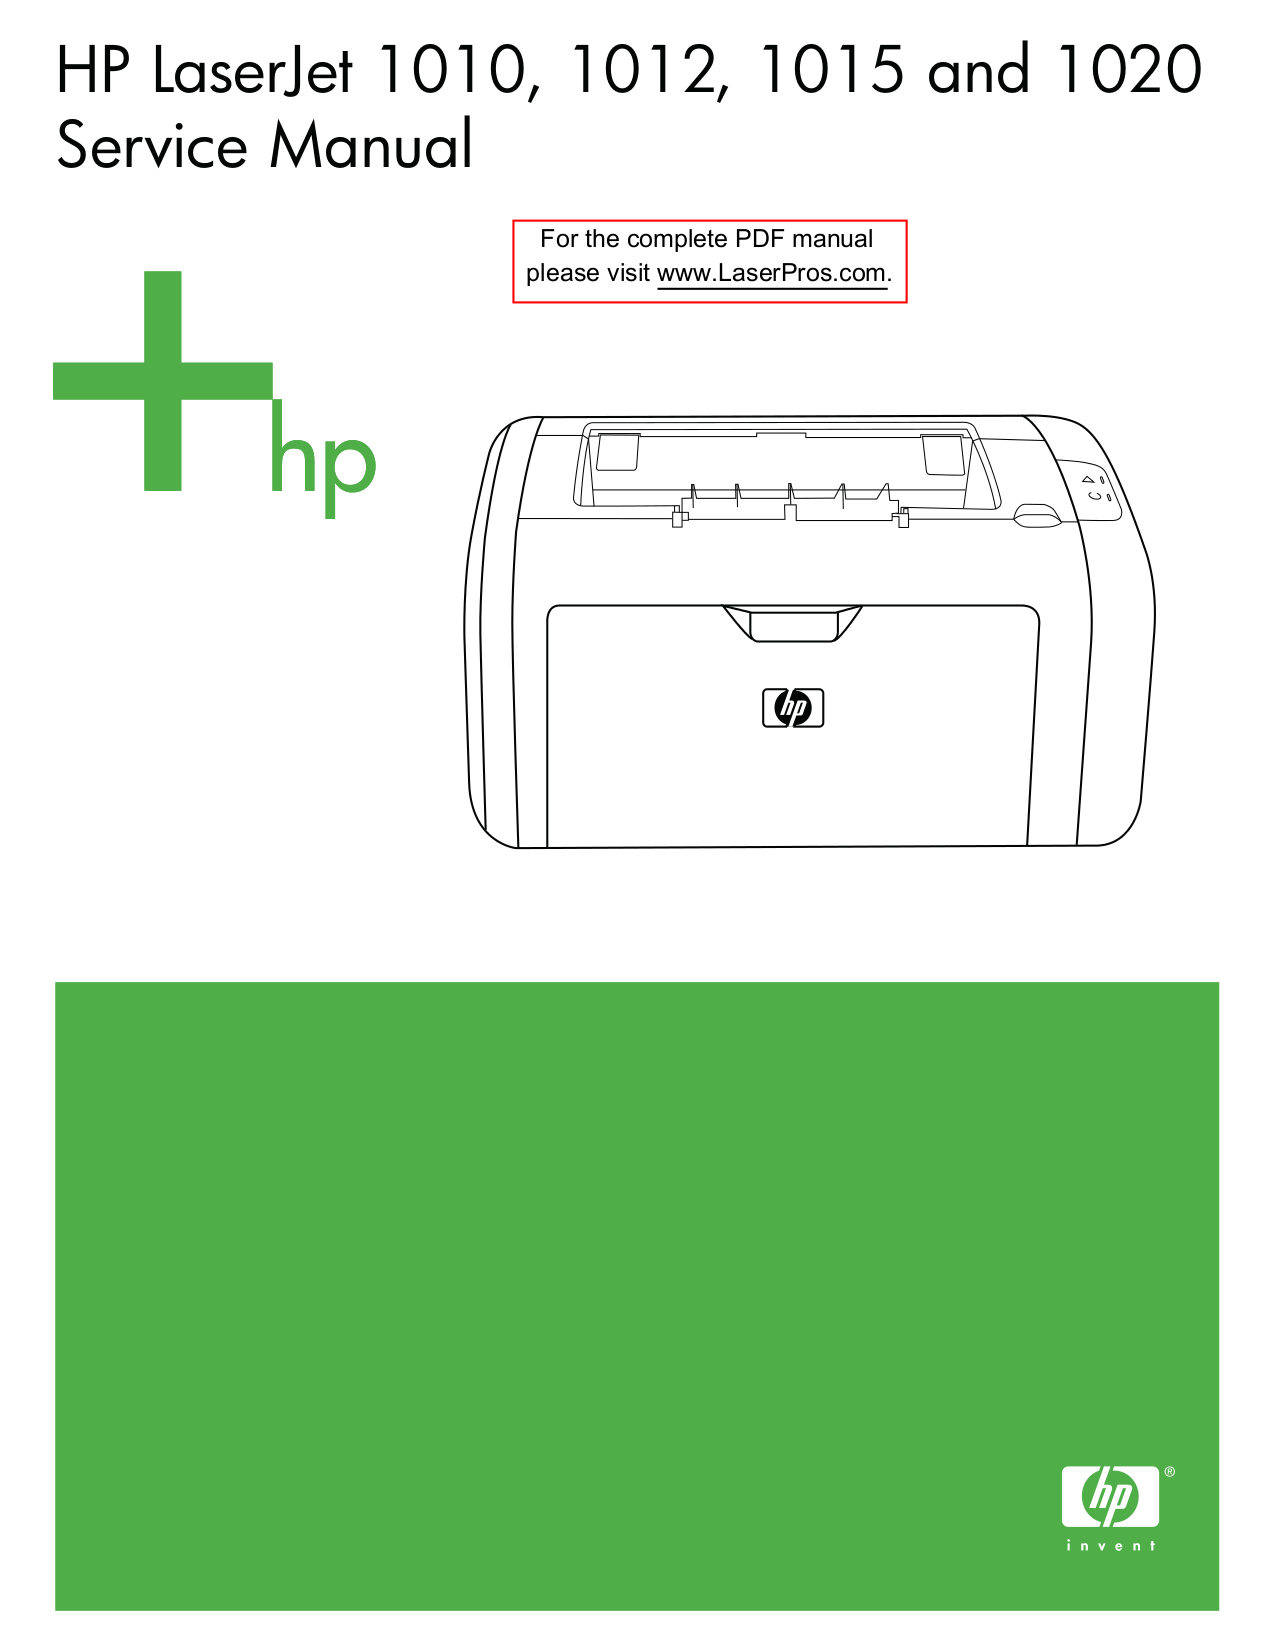 Hp Laser Printer 1015 Driver Windows 7